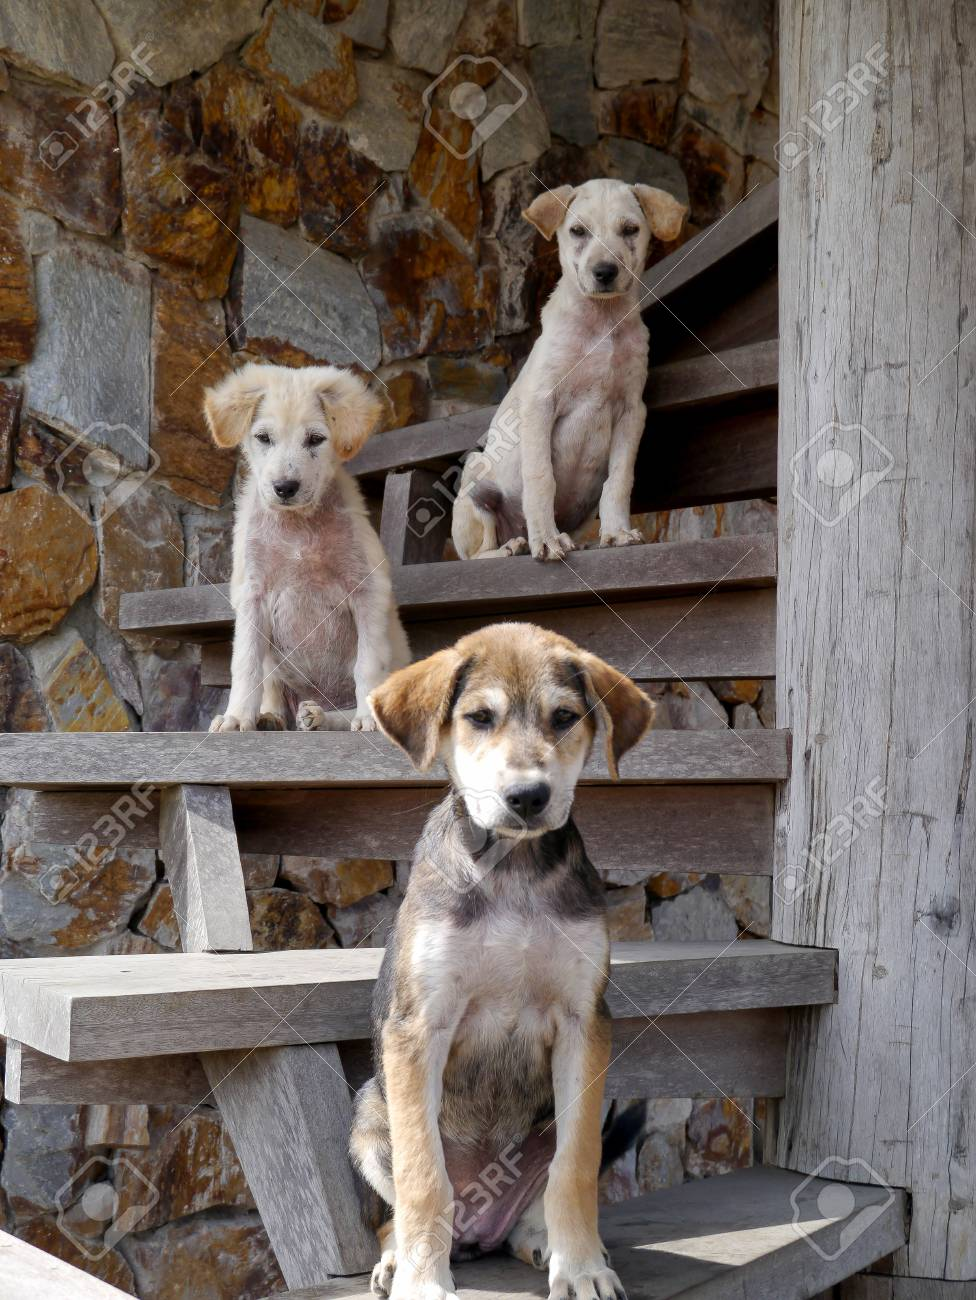 Prodigious Dogs Posing Looking Ny On Stairs Looking Ny On Stairsstock Photo Dogs Posing Looking Ny On Stairs Looking Ny Stock Ny Looking Cartoon Dogs Most Ny Looking Dogs bark post Funny Looking Dogs